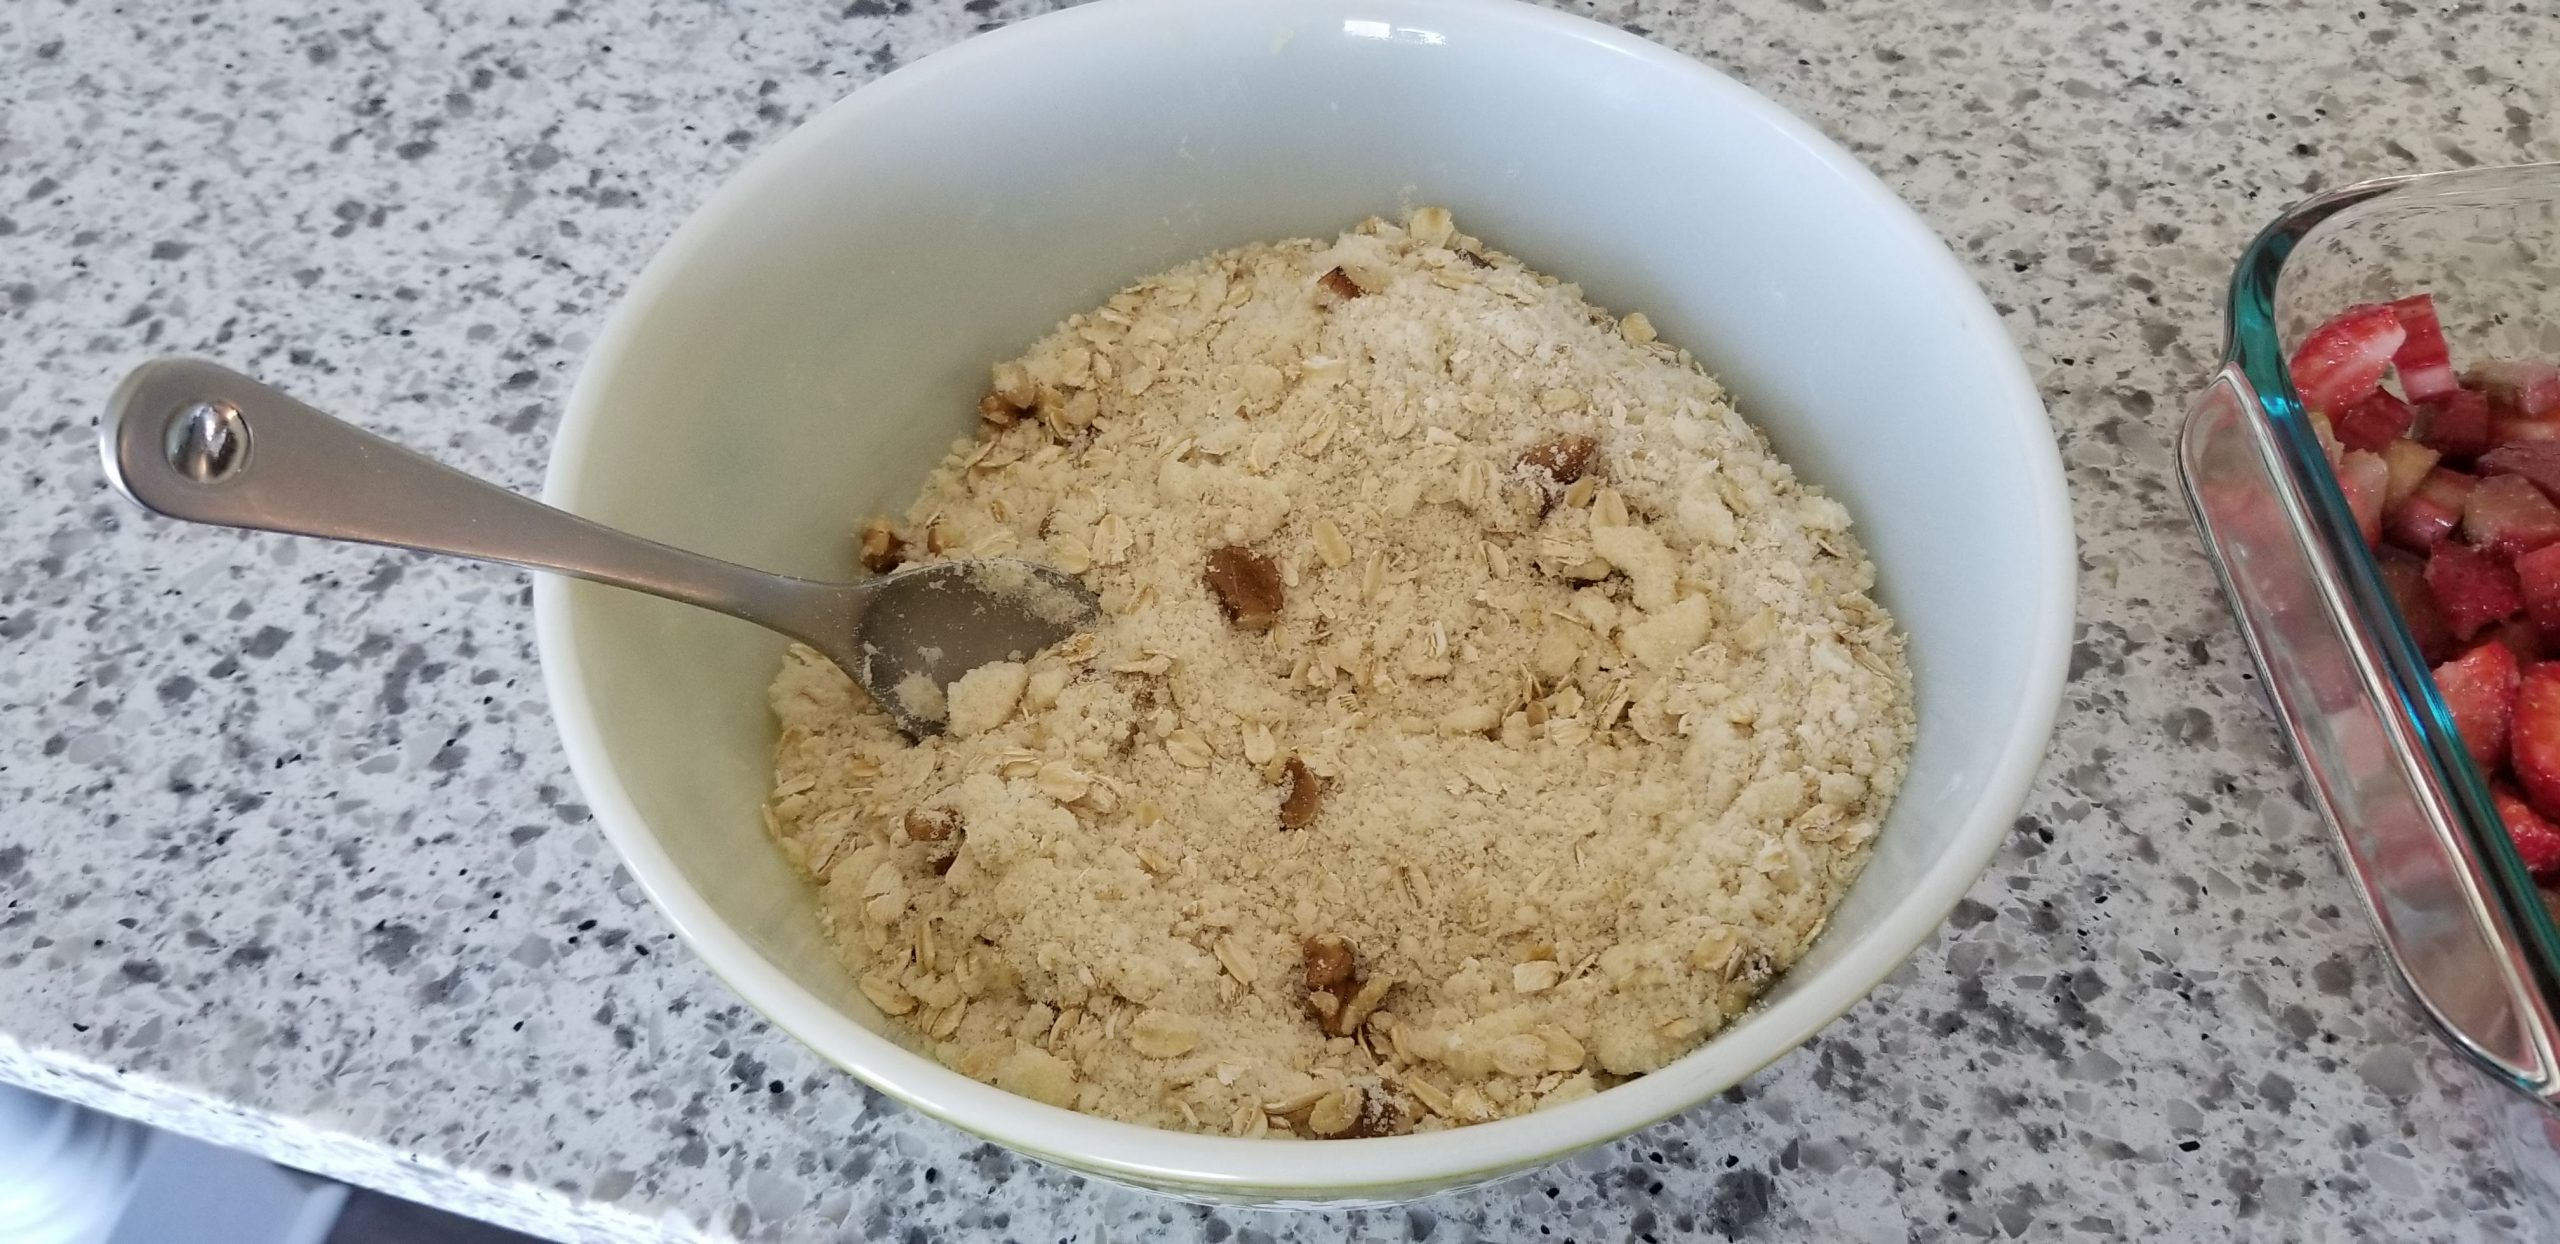 The crisp topping for dairy-free strawberry rhubarb crisp in a bowl